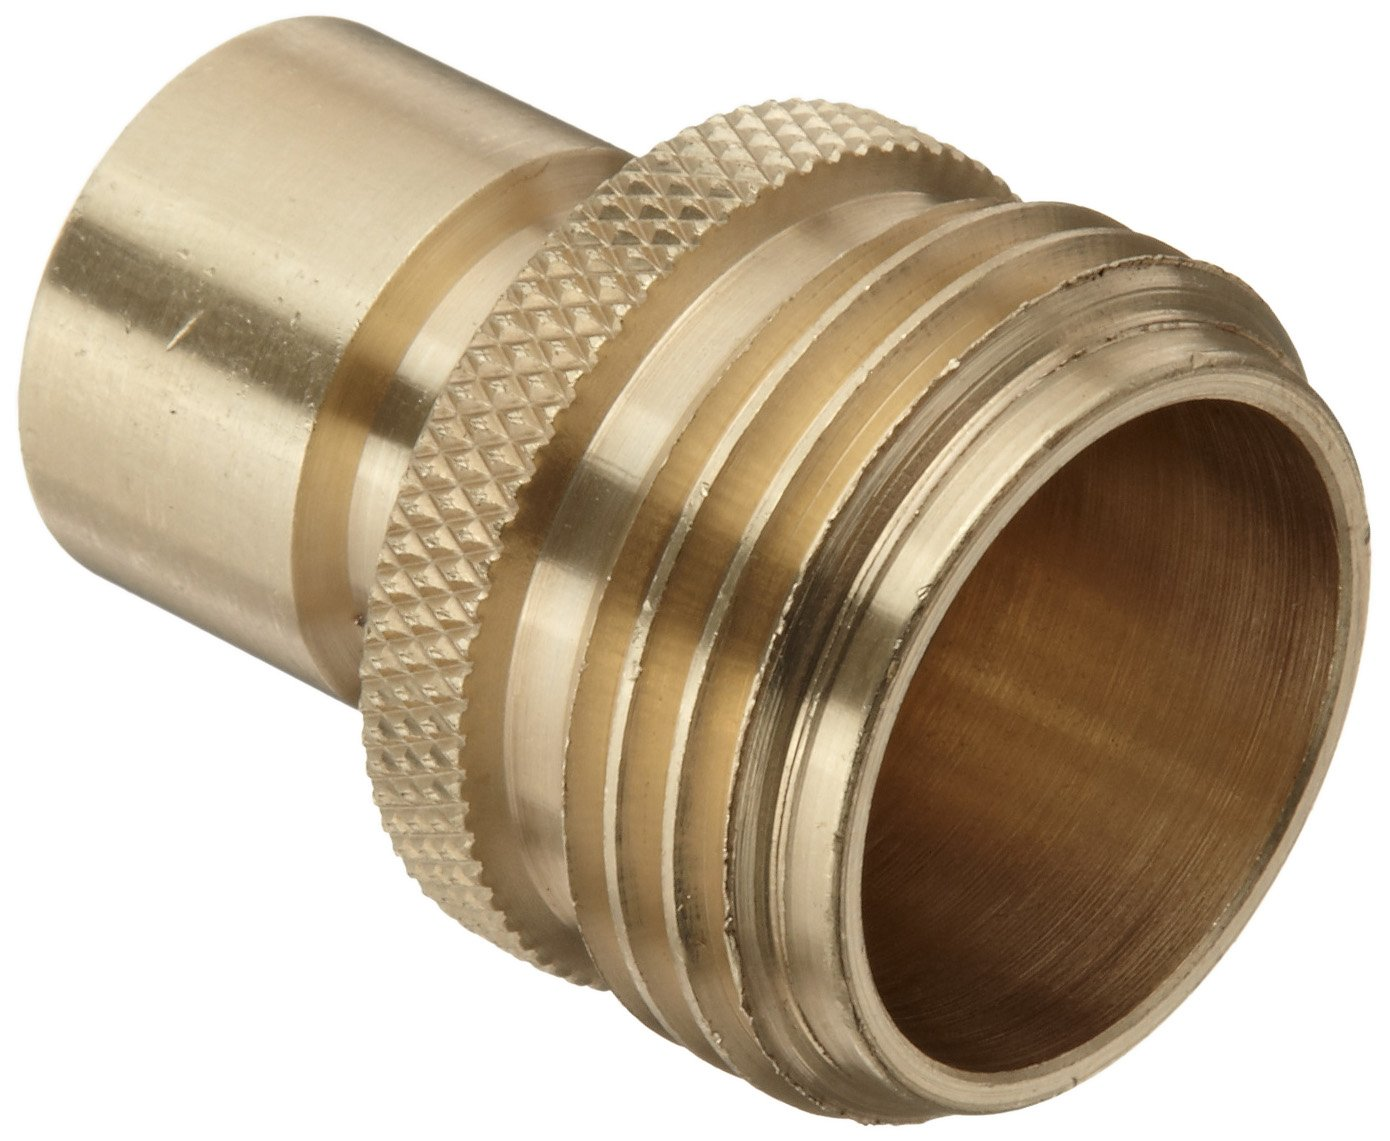 Dixon DGH7P Brass Quick-Connect Fitting, Garden Hose Male Plug, 200 psi Pressure